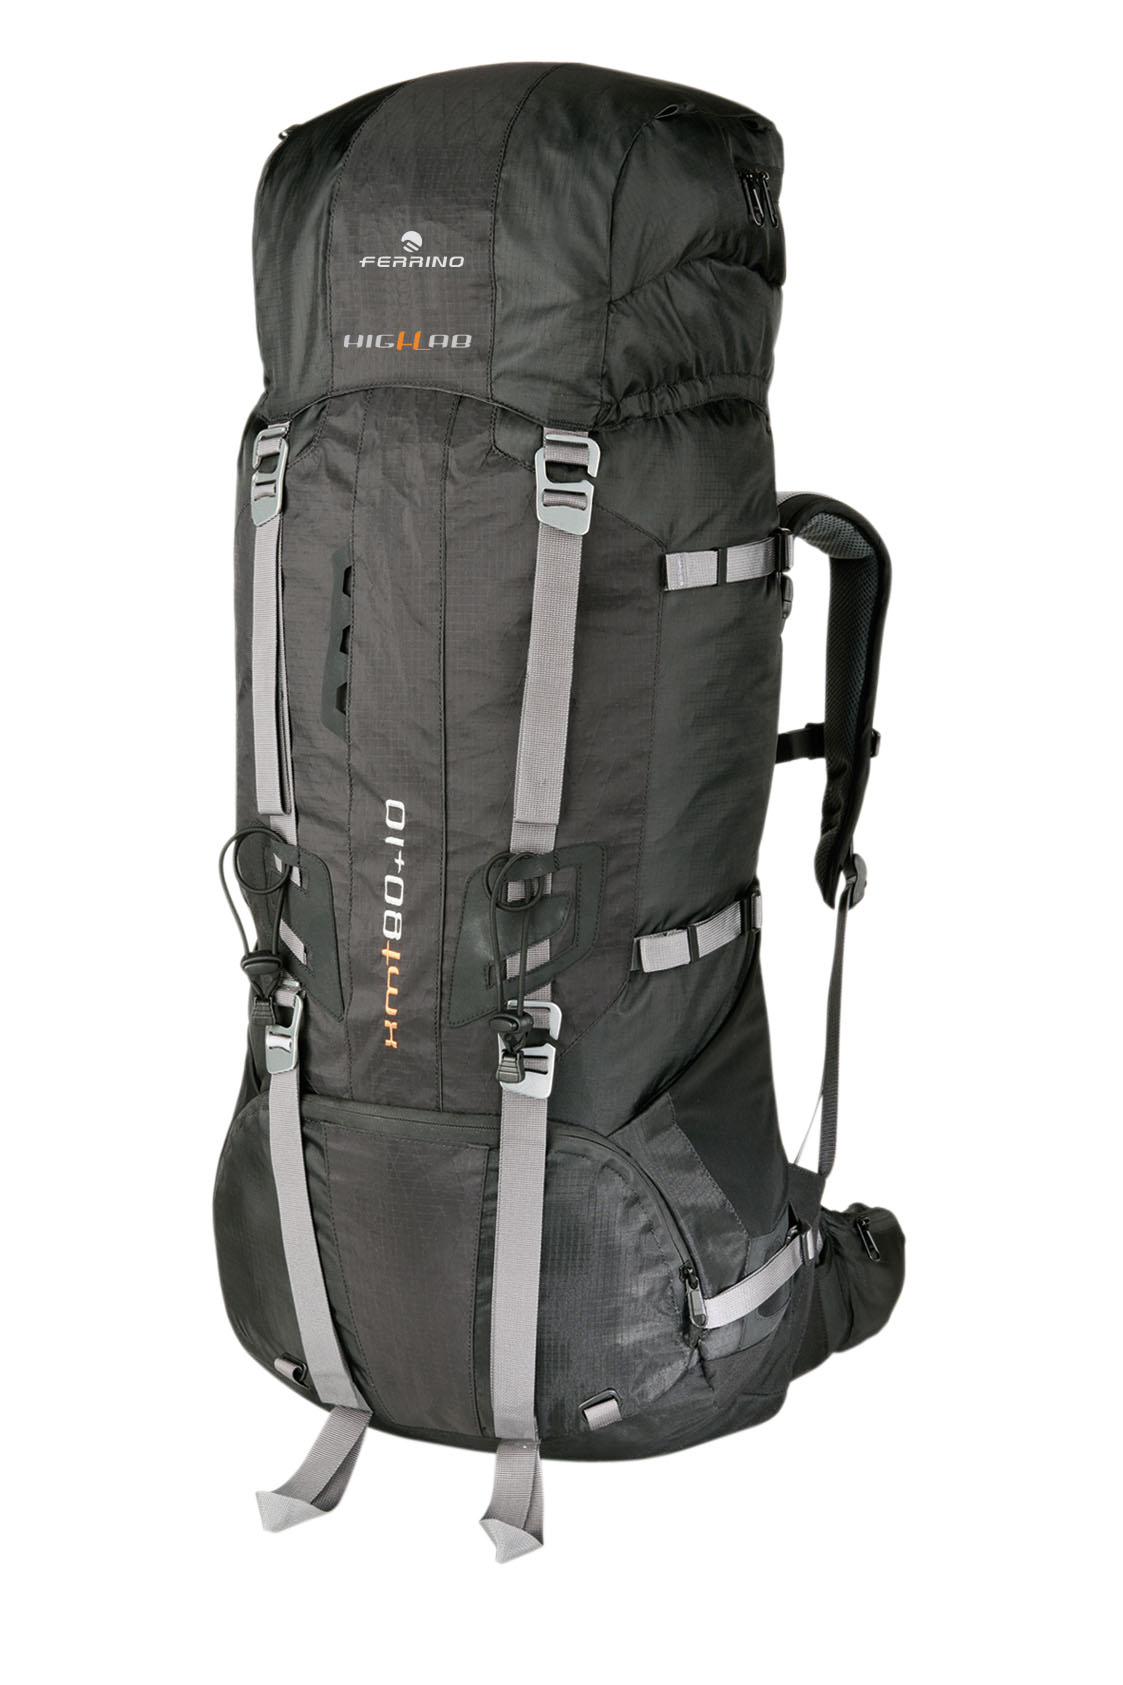 XMT 80+10 backpack